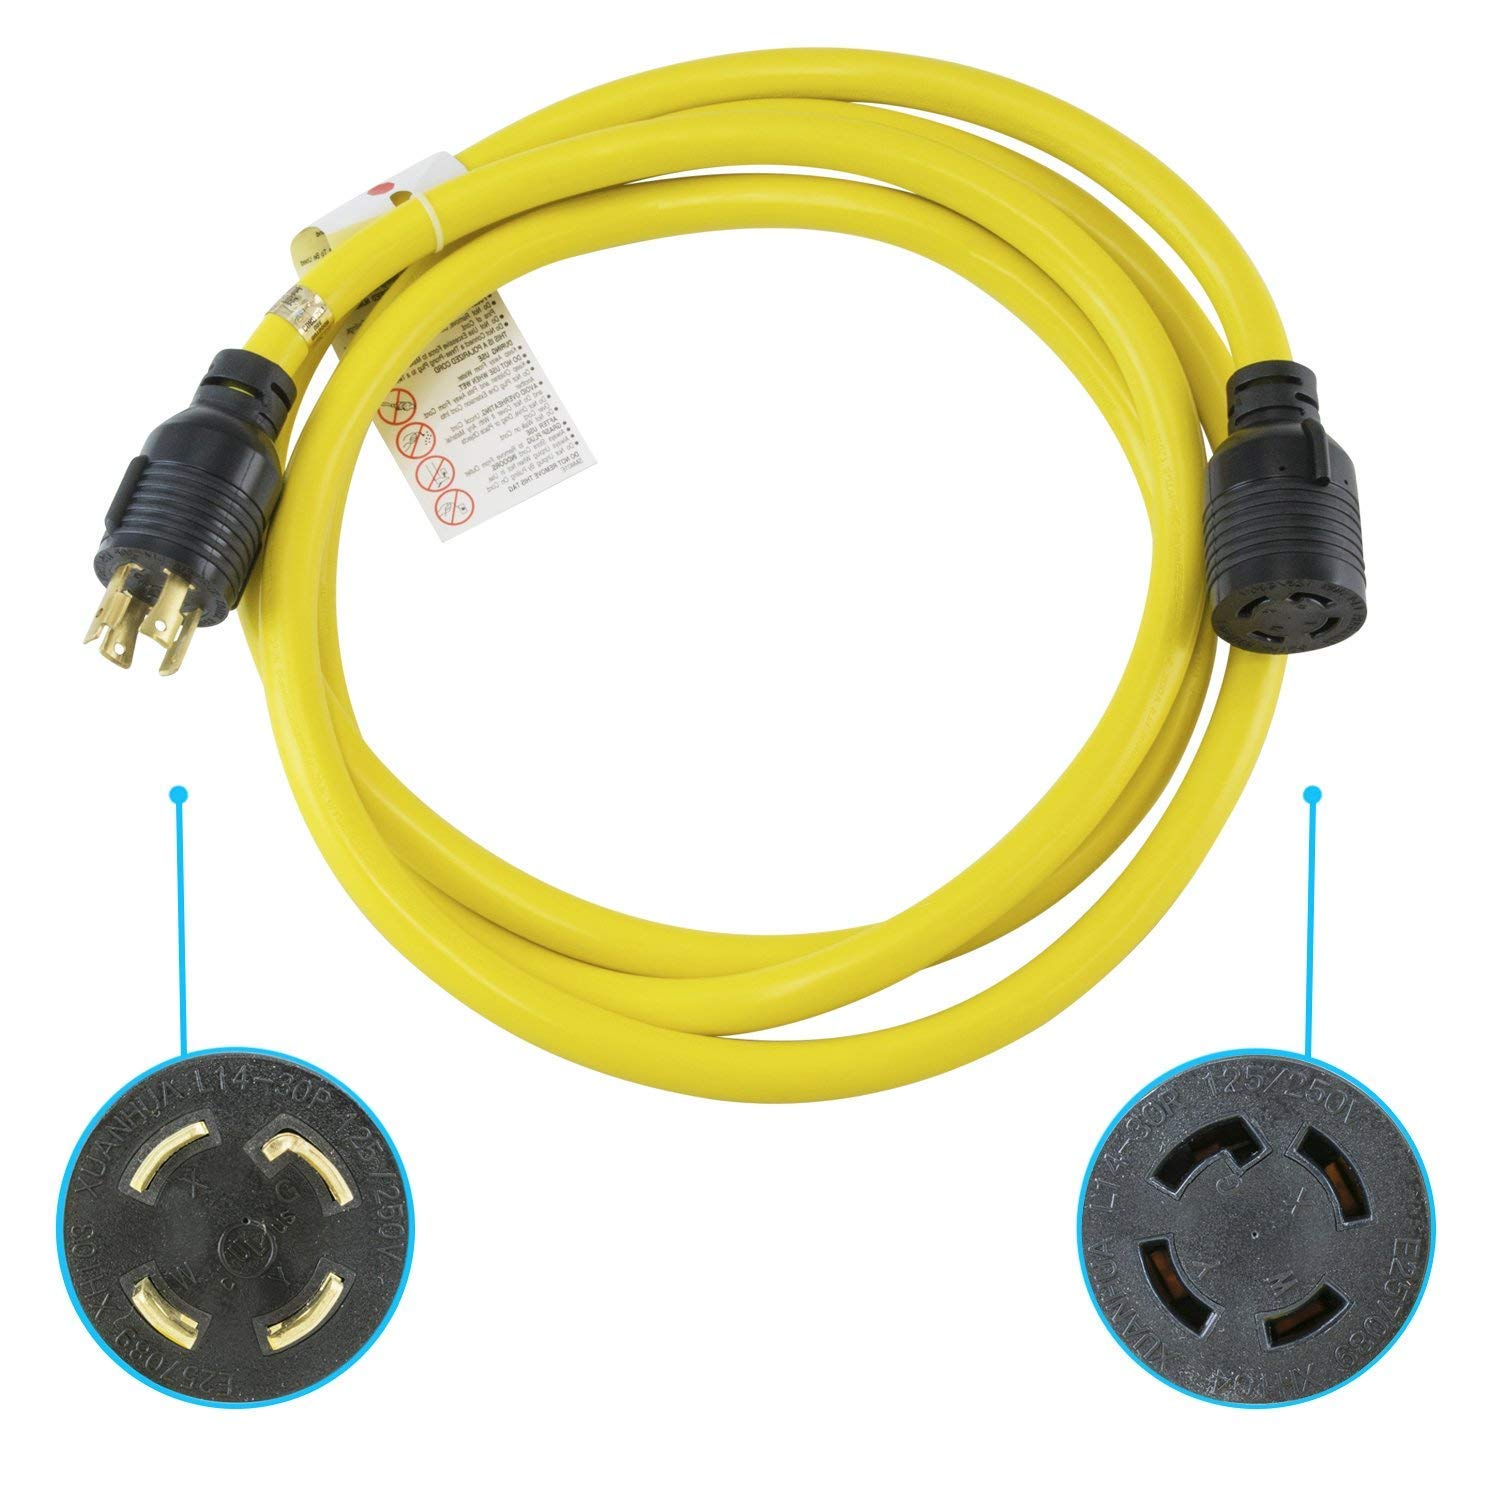 Houseables Generator Cord Electric Extension Wire 4 Prong 30 Amp Wiring 125 250v Single Yellow 10 Ft All Rubber Gauge Heavy Duty L14 Transfer